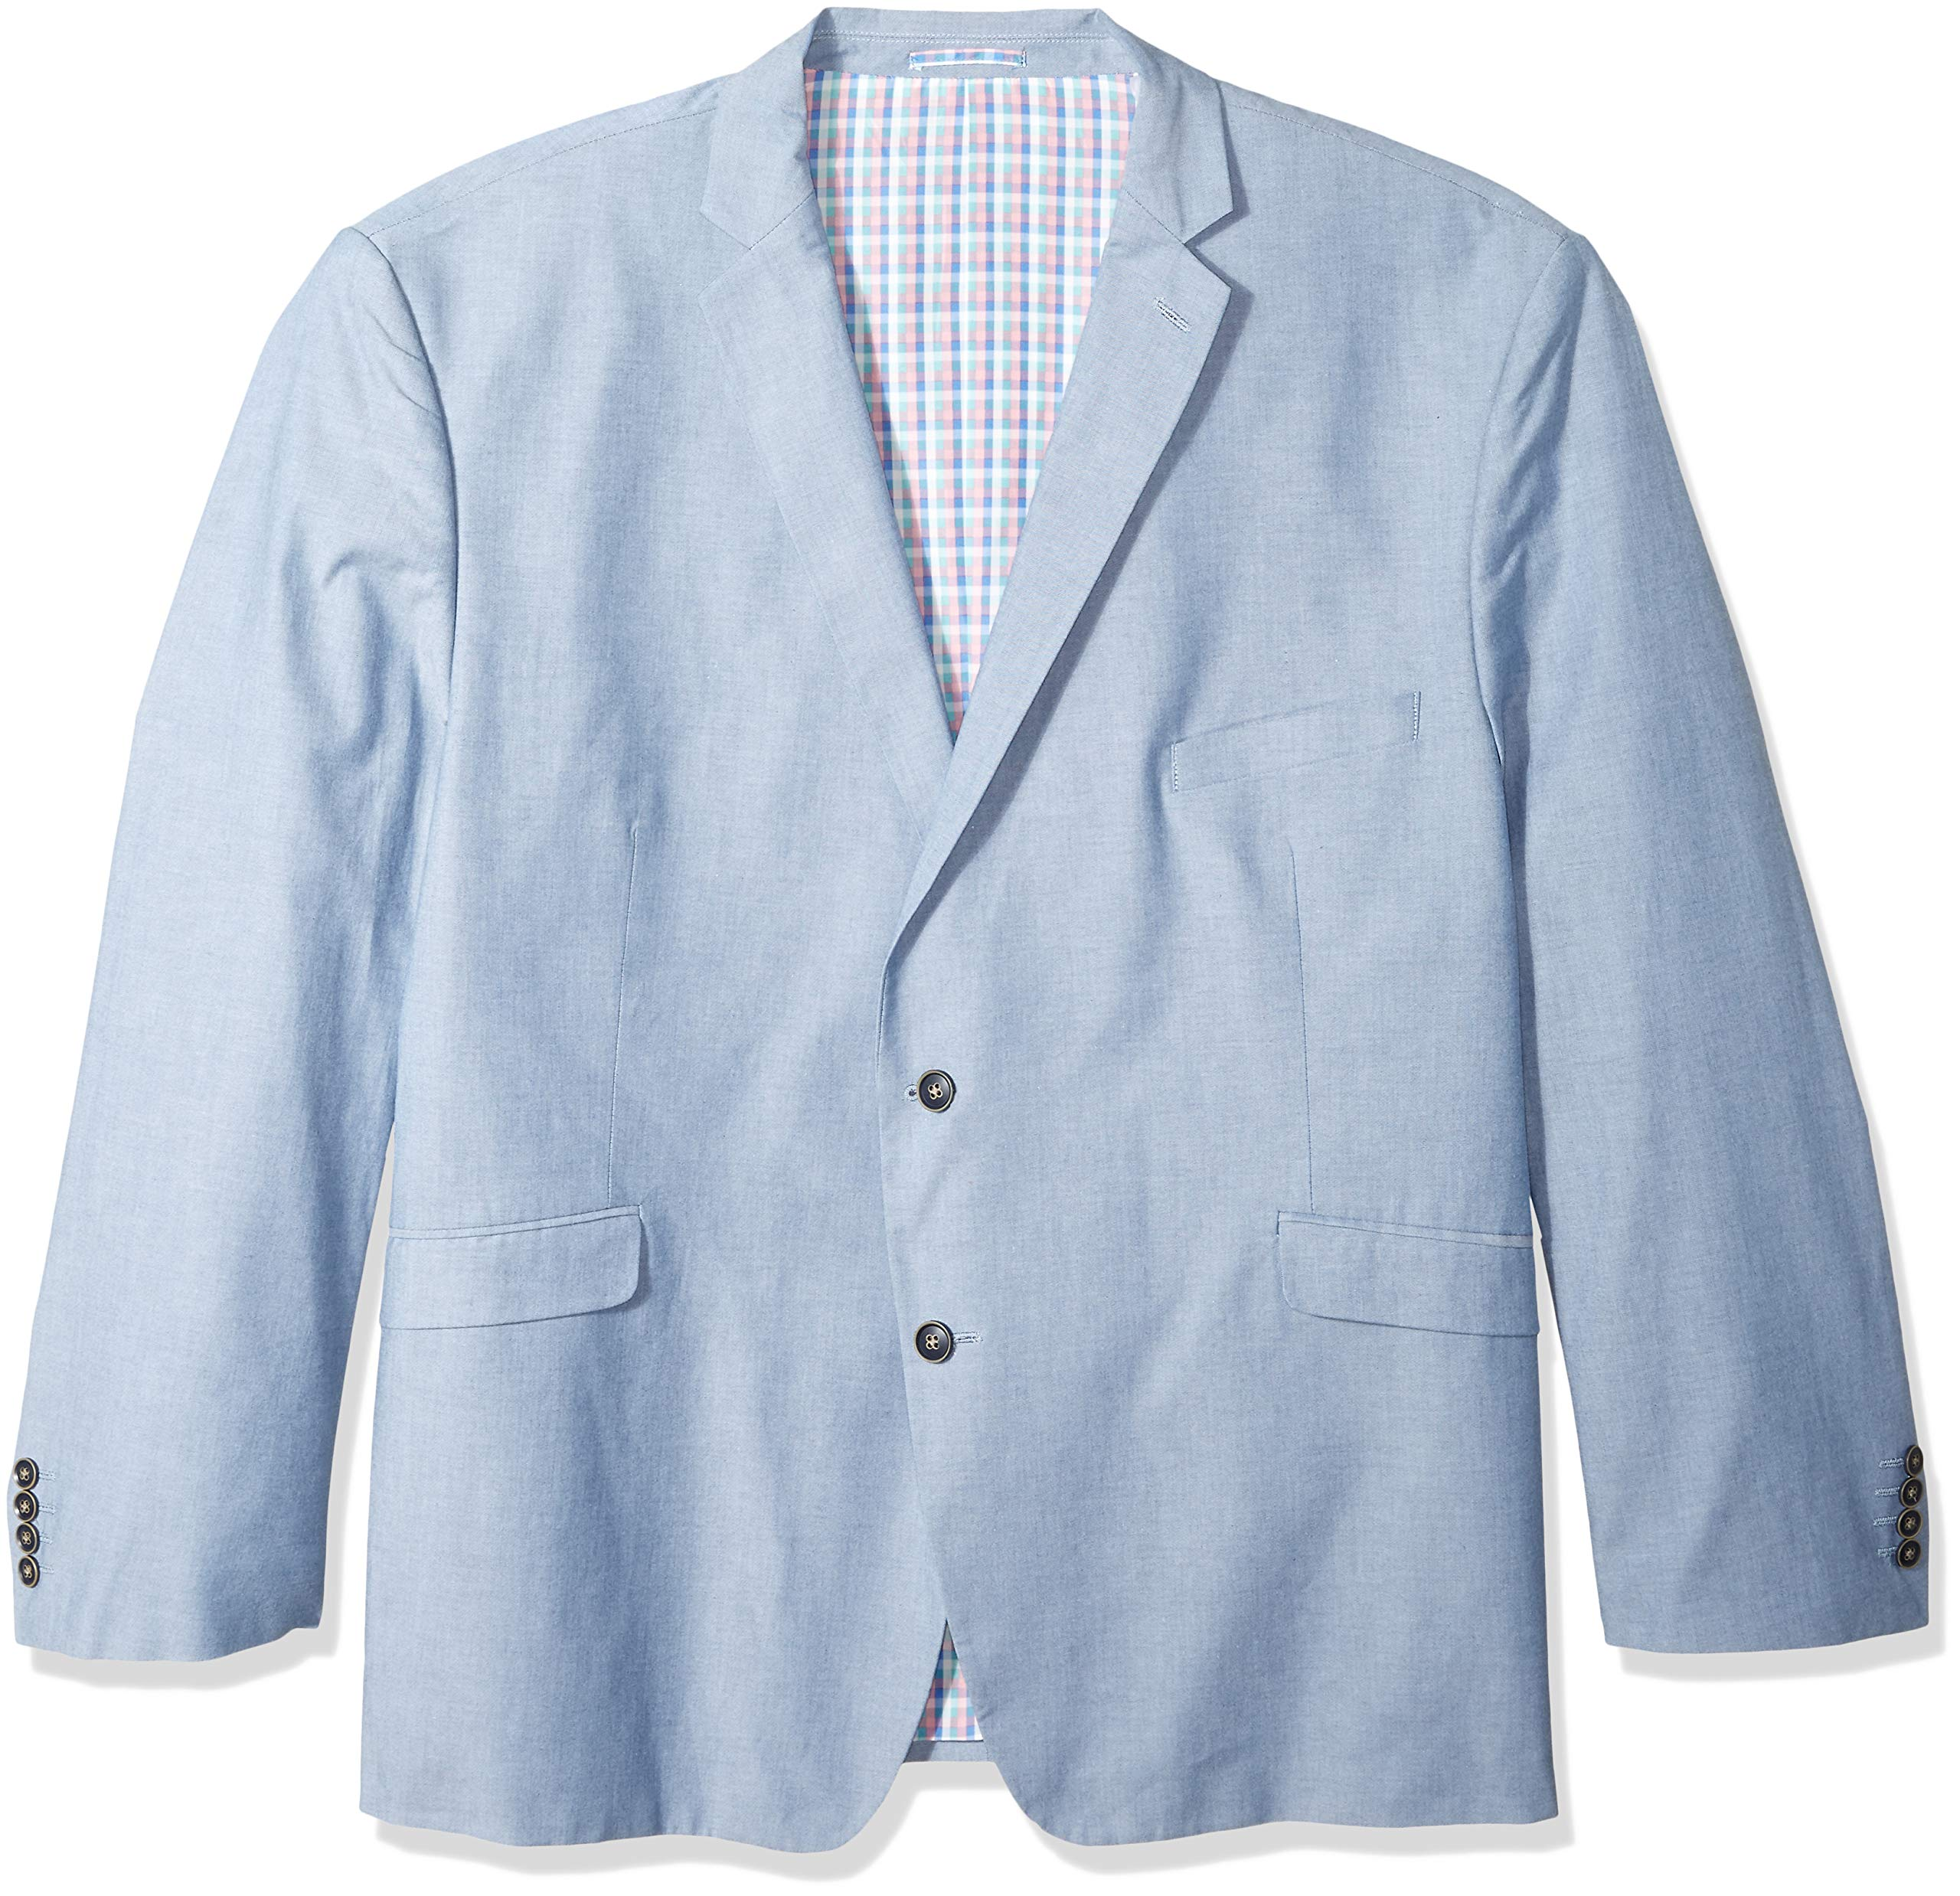 U.S. Polo Assn. Men's Big and Tall Chambray Sport Coat, Blue, 58 Long